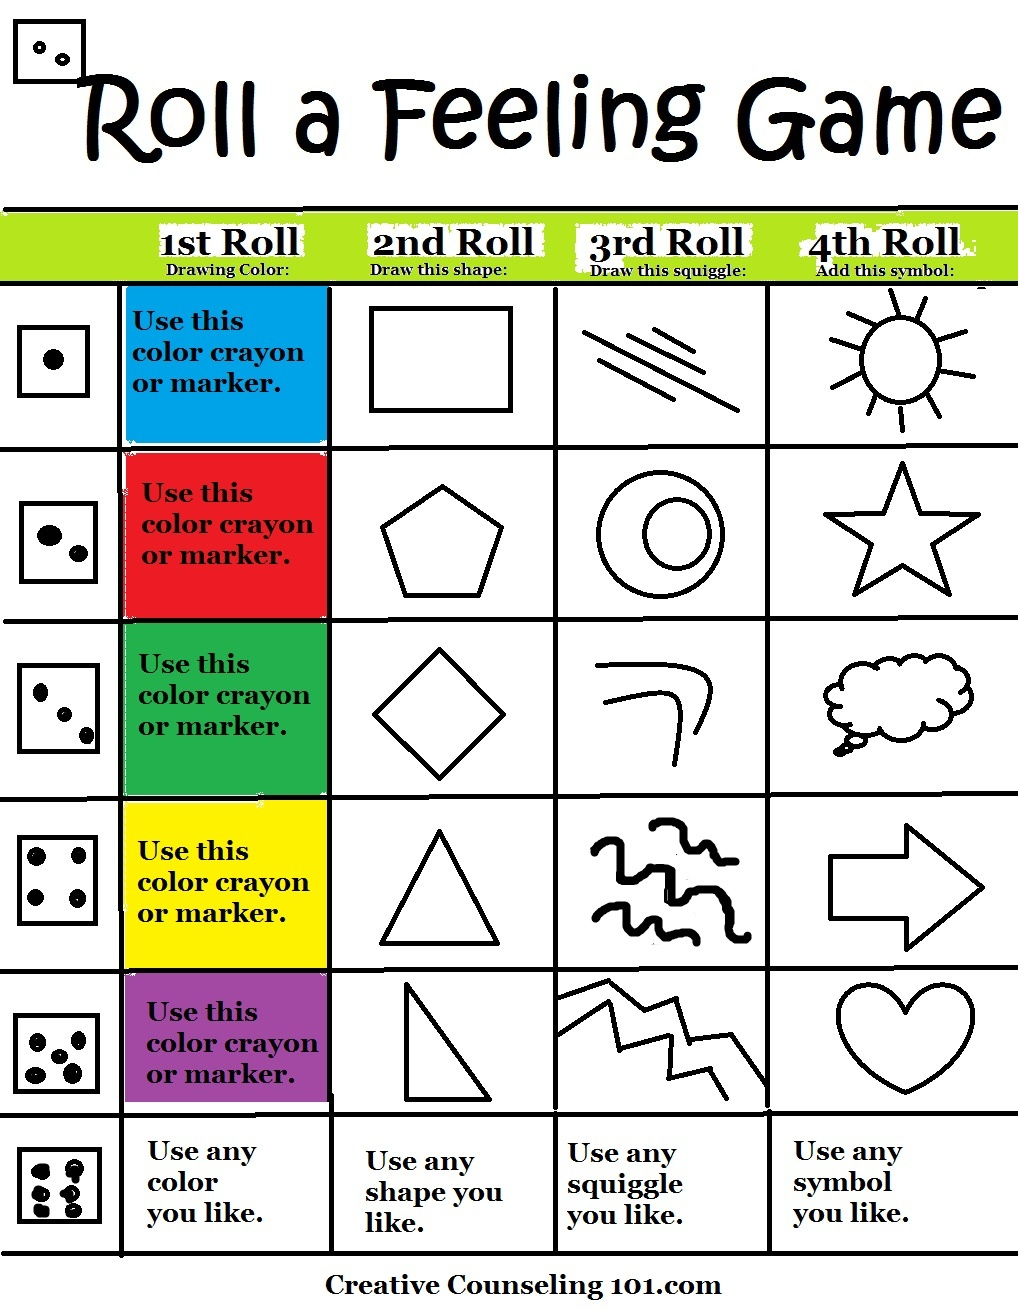 Beyond Art Therapy Roll-A-Feelings Game - Free Printable Counseling Worksheets